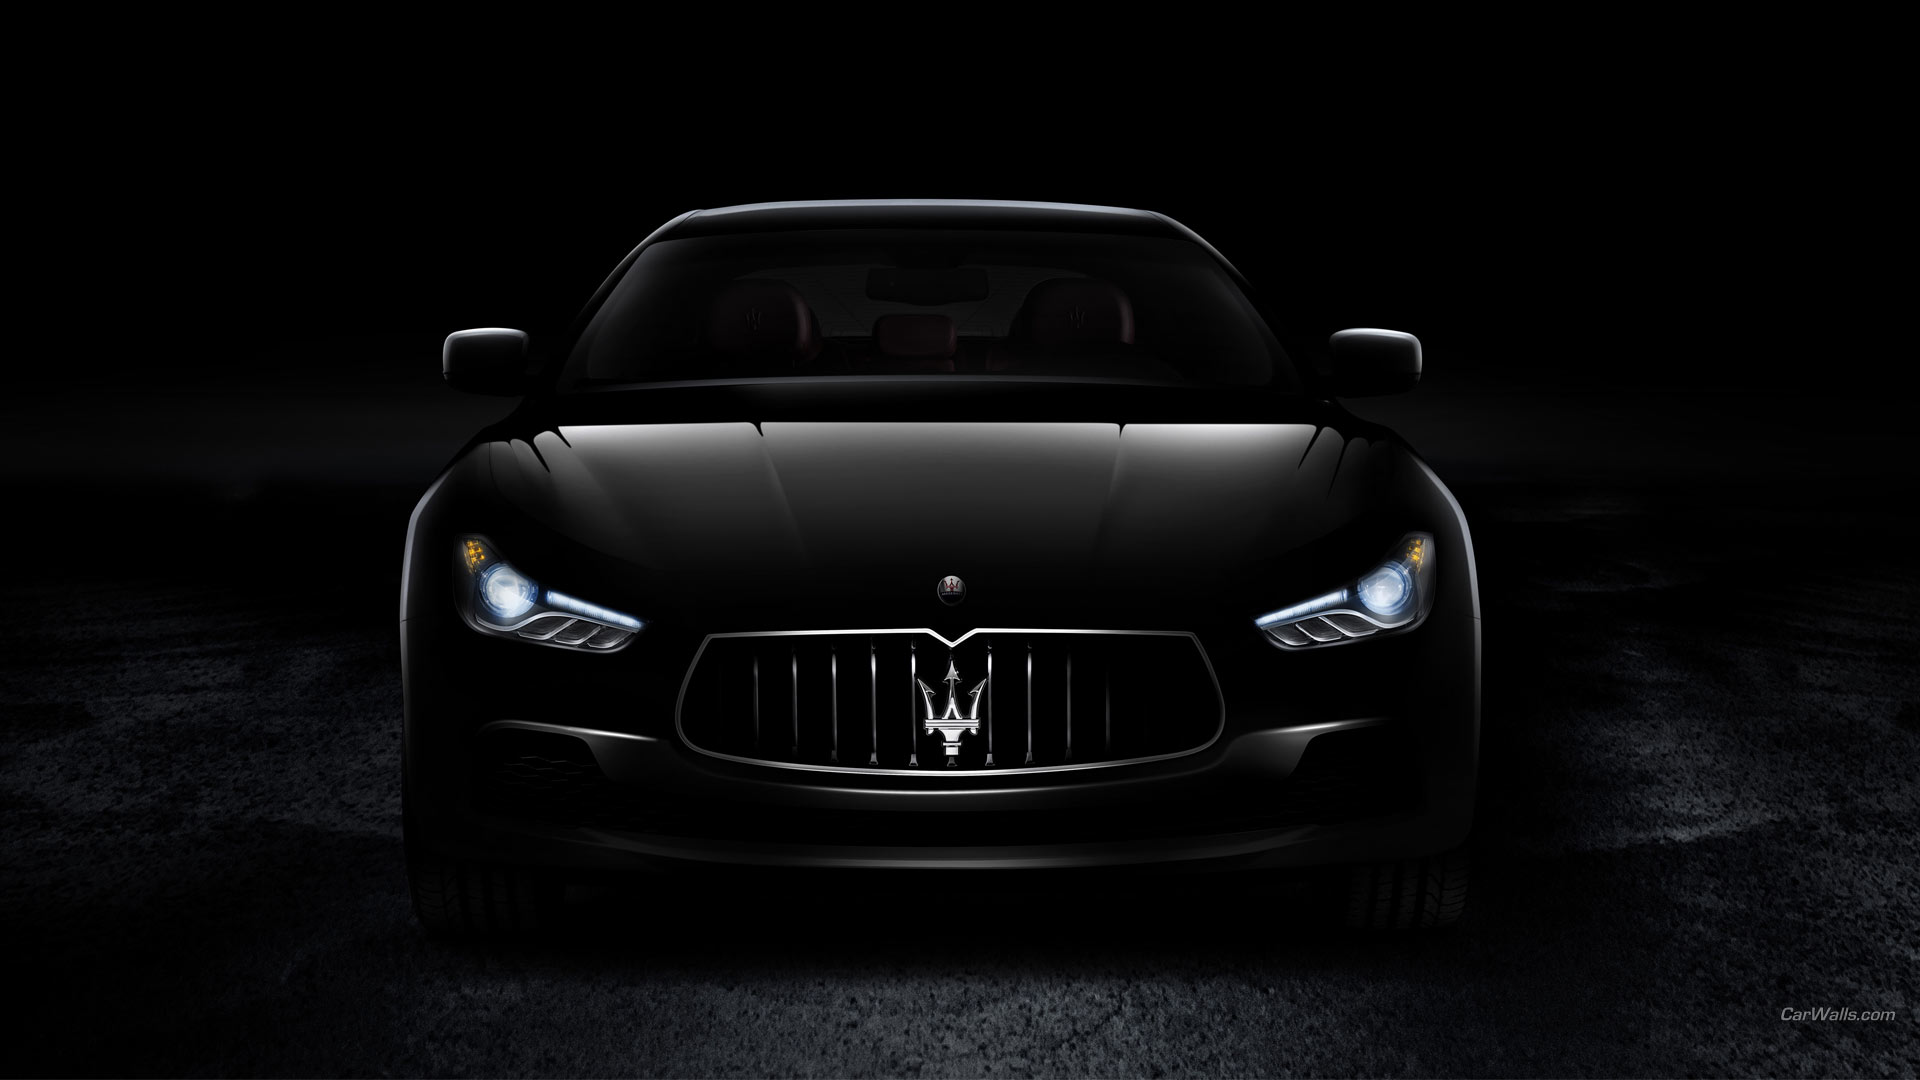 2014 Maserati Ghibli Computer Wallpapers Desktop Backgrounds 1920x1080